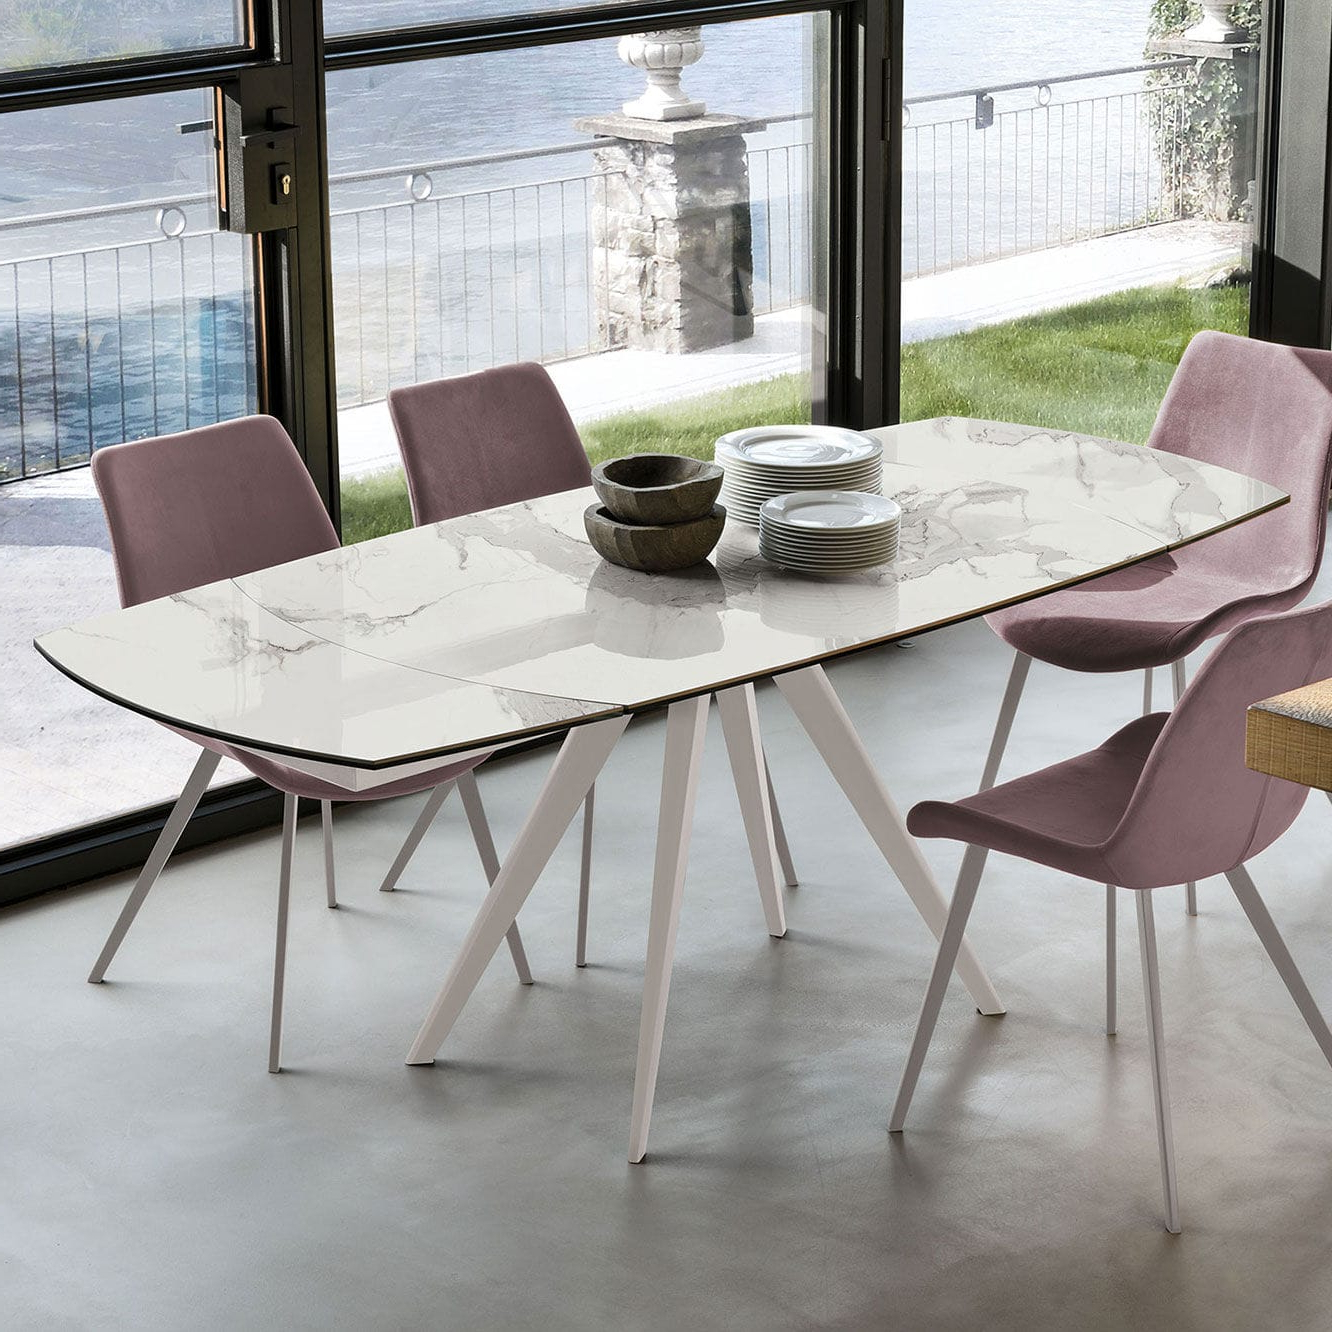 Current Contemporary Dining Table / Tempered Glass / Porcelain Inside Dining Tables With Brushed Stainless Steel Frame (Gallery 5 of 30)